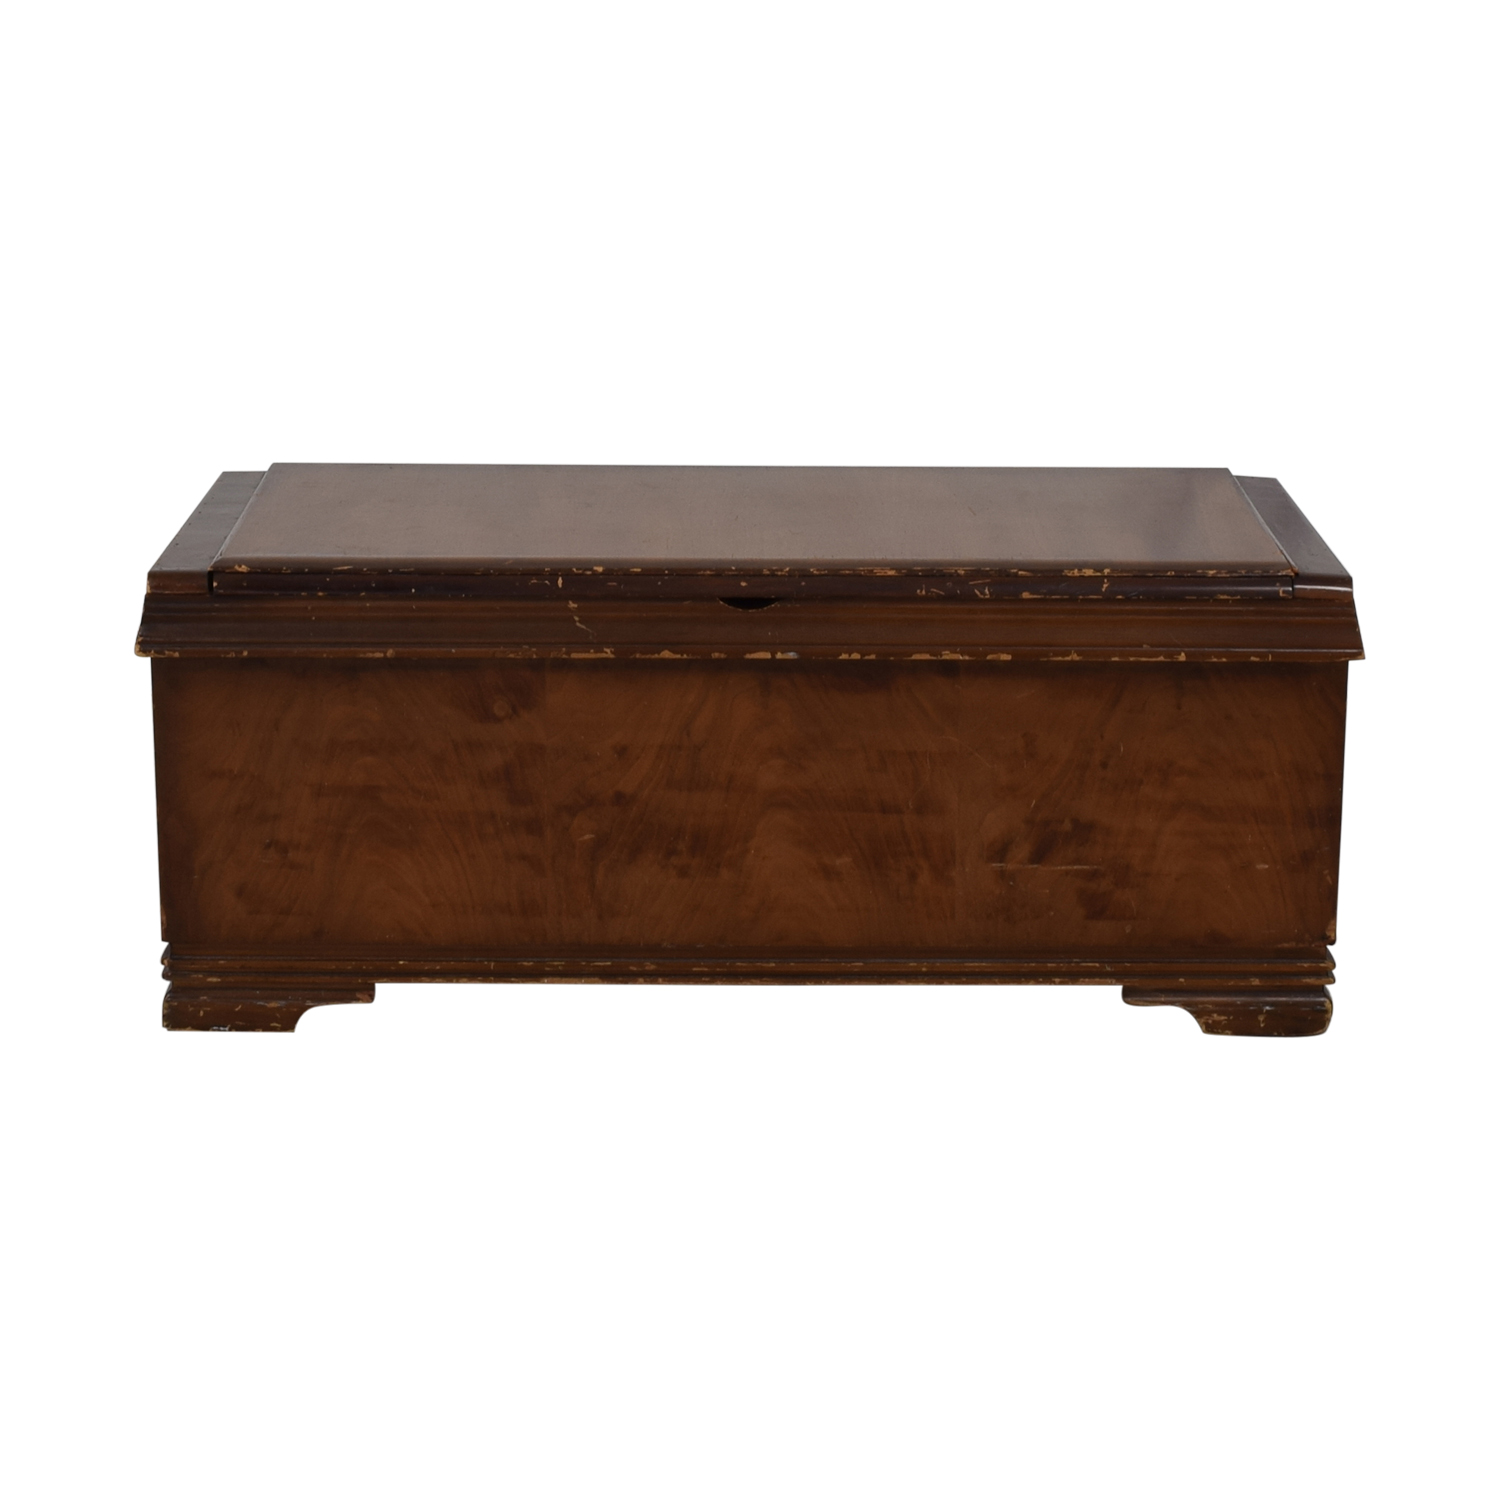 Wooden Trunk coupon